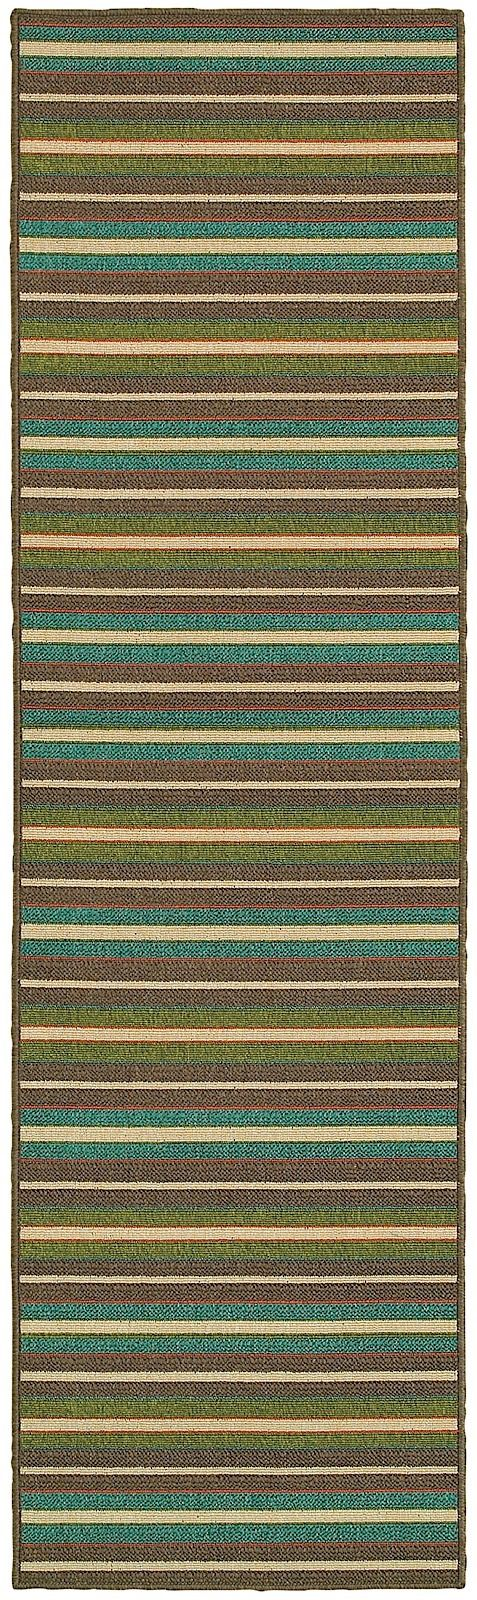 oriental weavers seaside solid/striped area rug collection